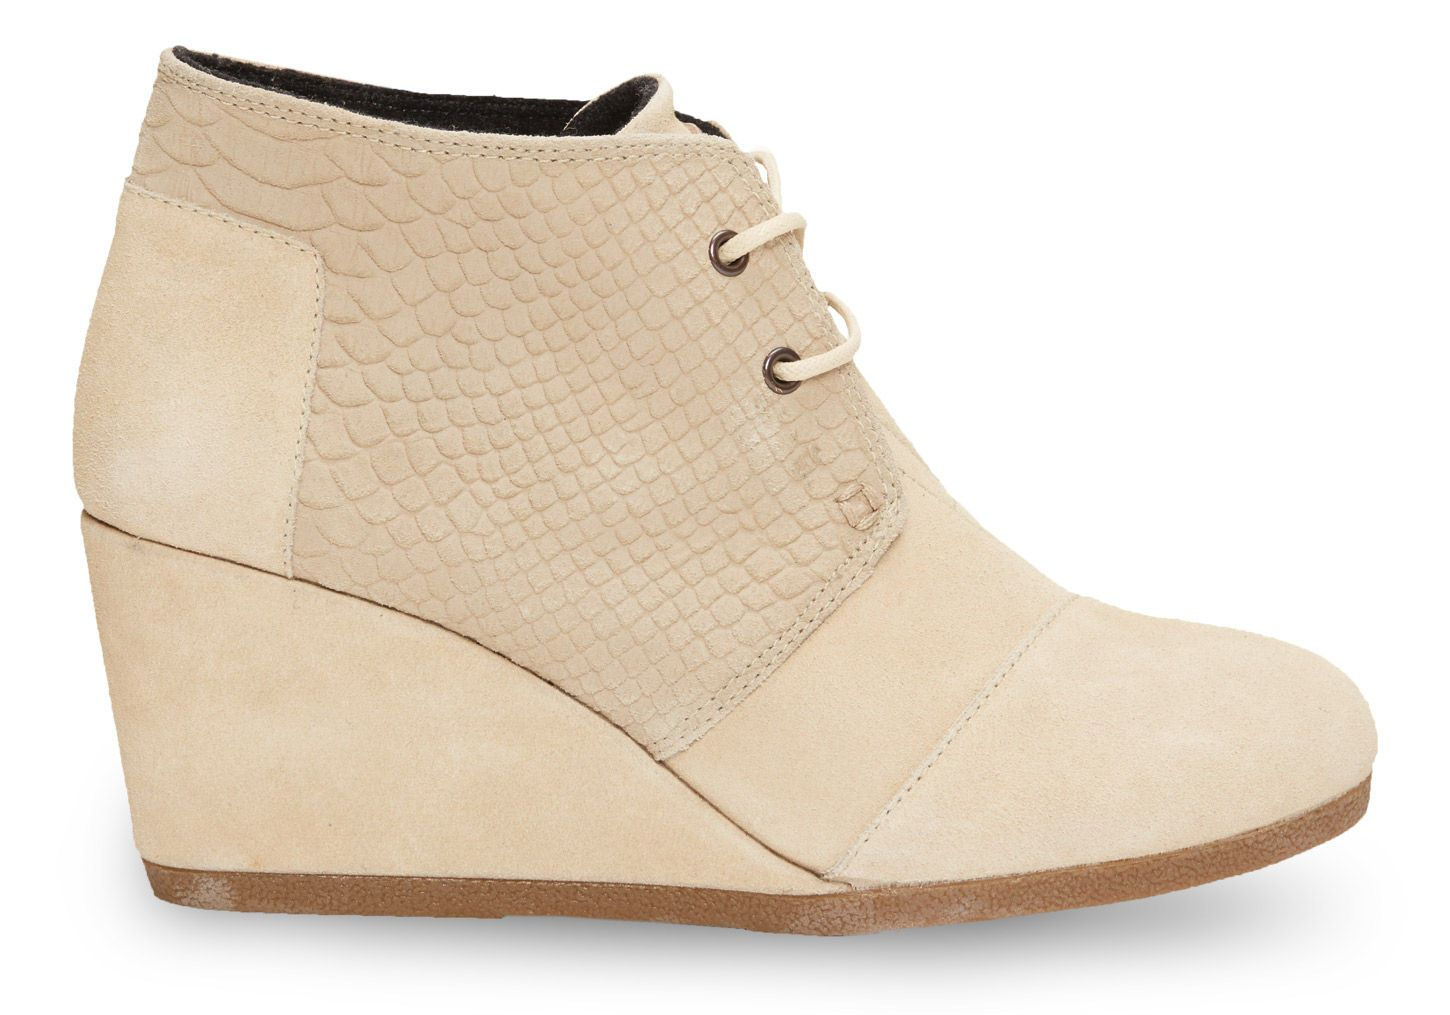 165e76edfb5 TOMS suede snakeskin Desert Wedges in cream.